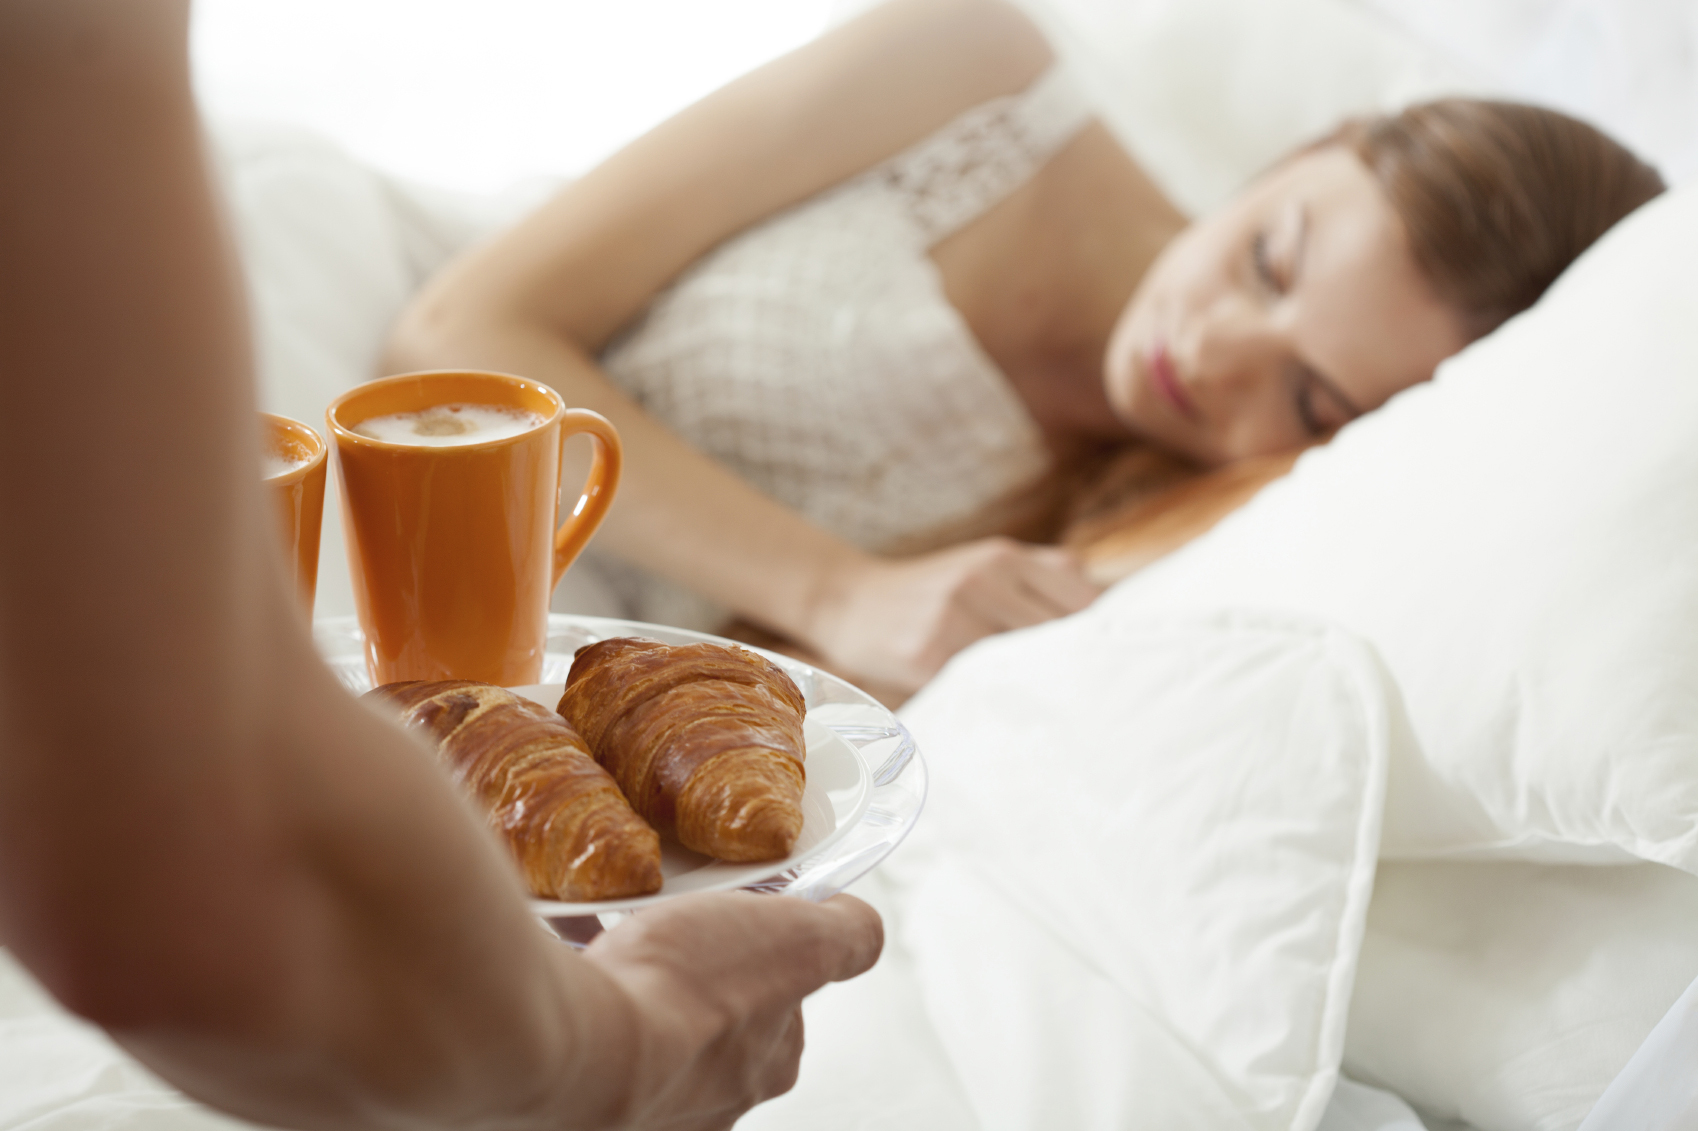 Surprise breakfast for sleeping woman